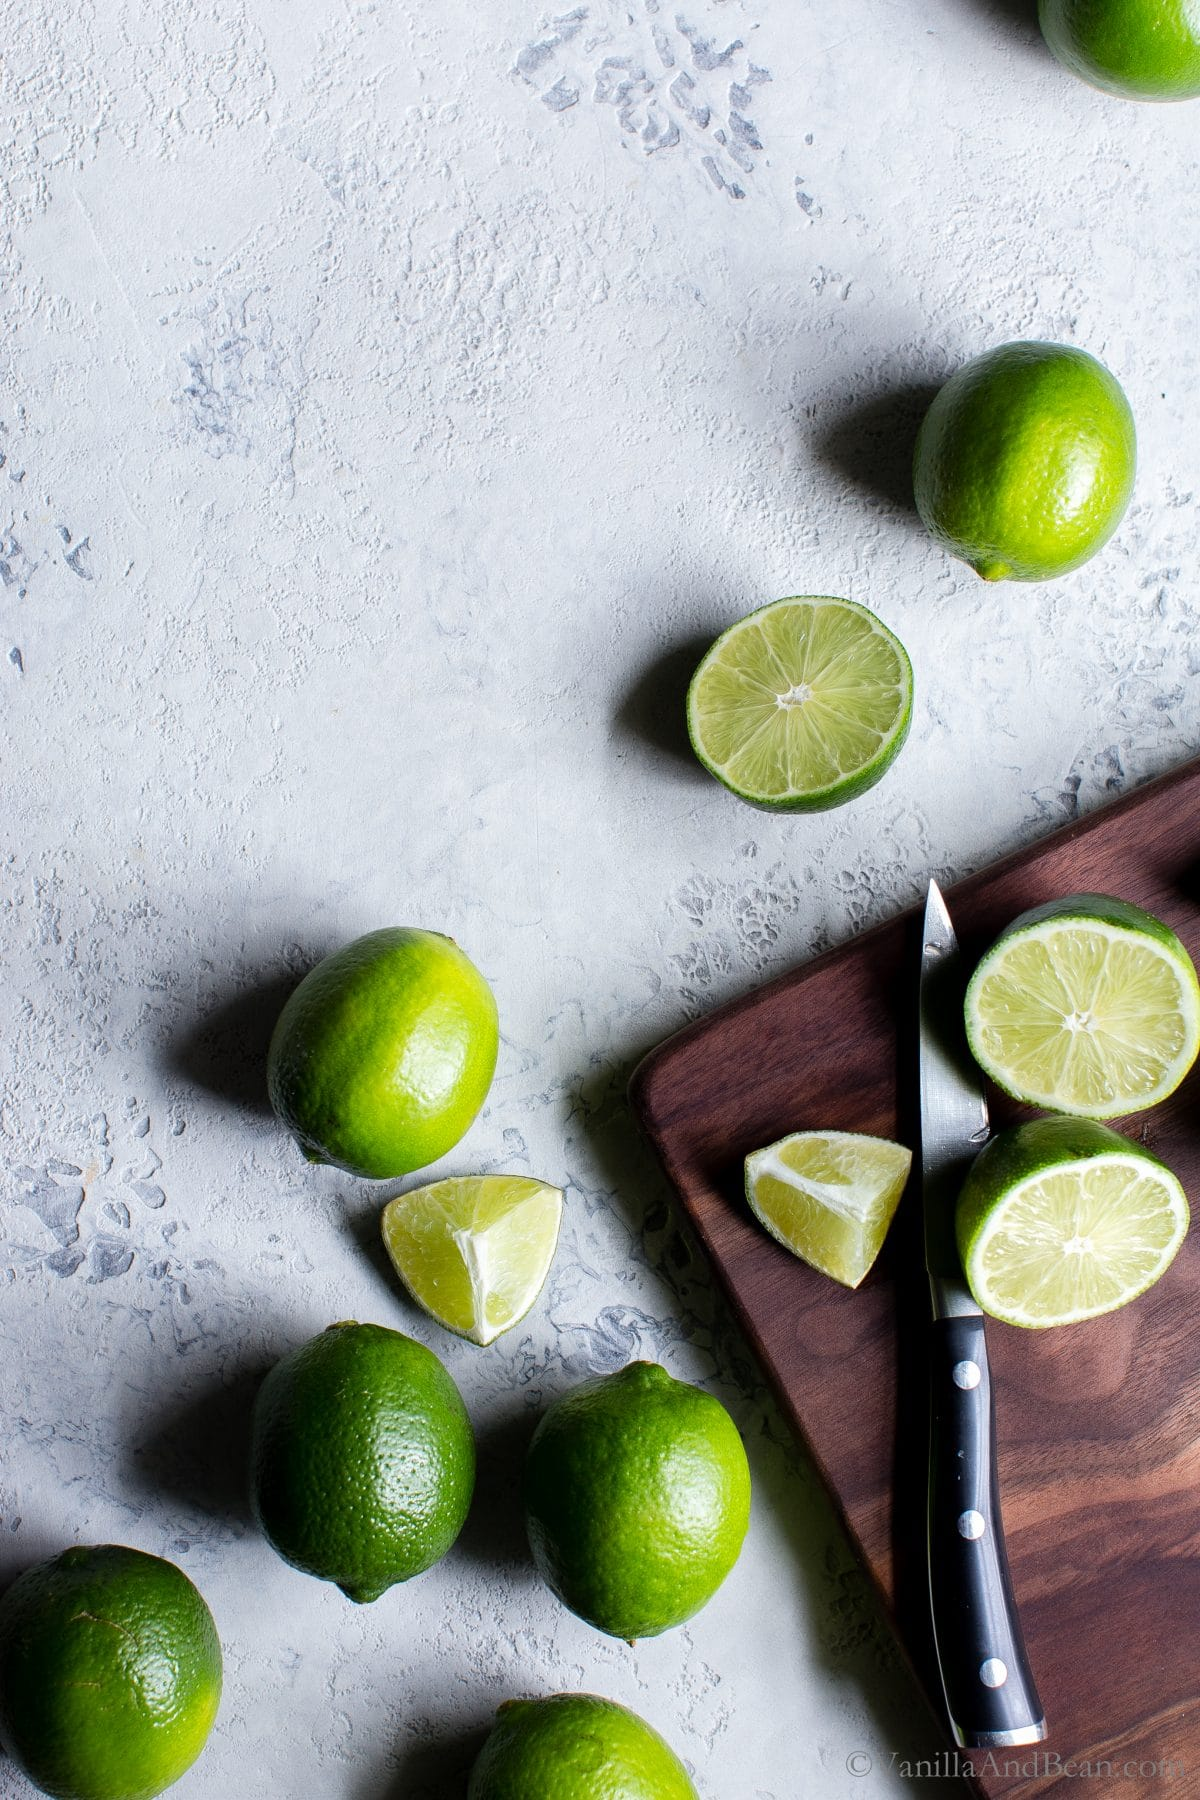 Chopping limes for Margaritas.